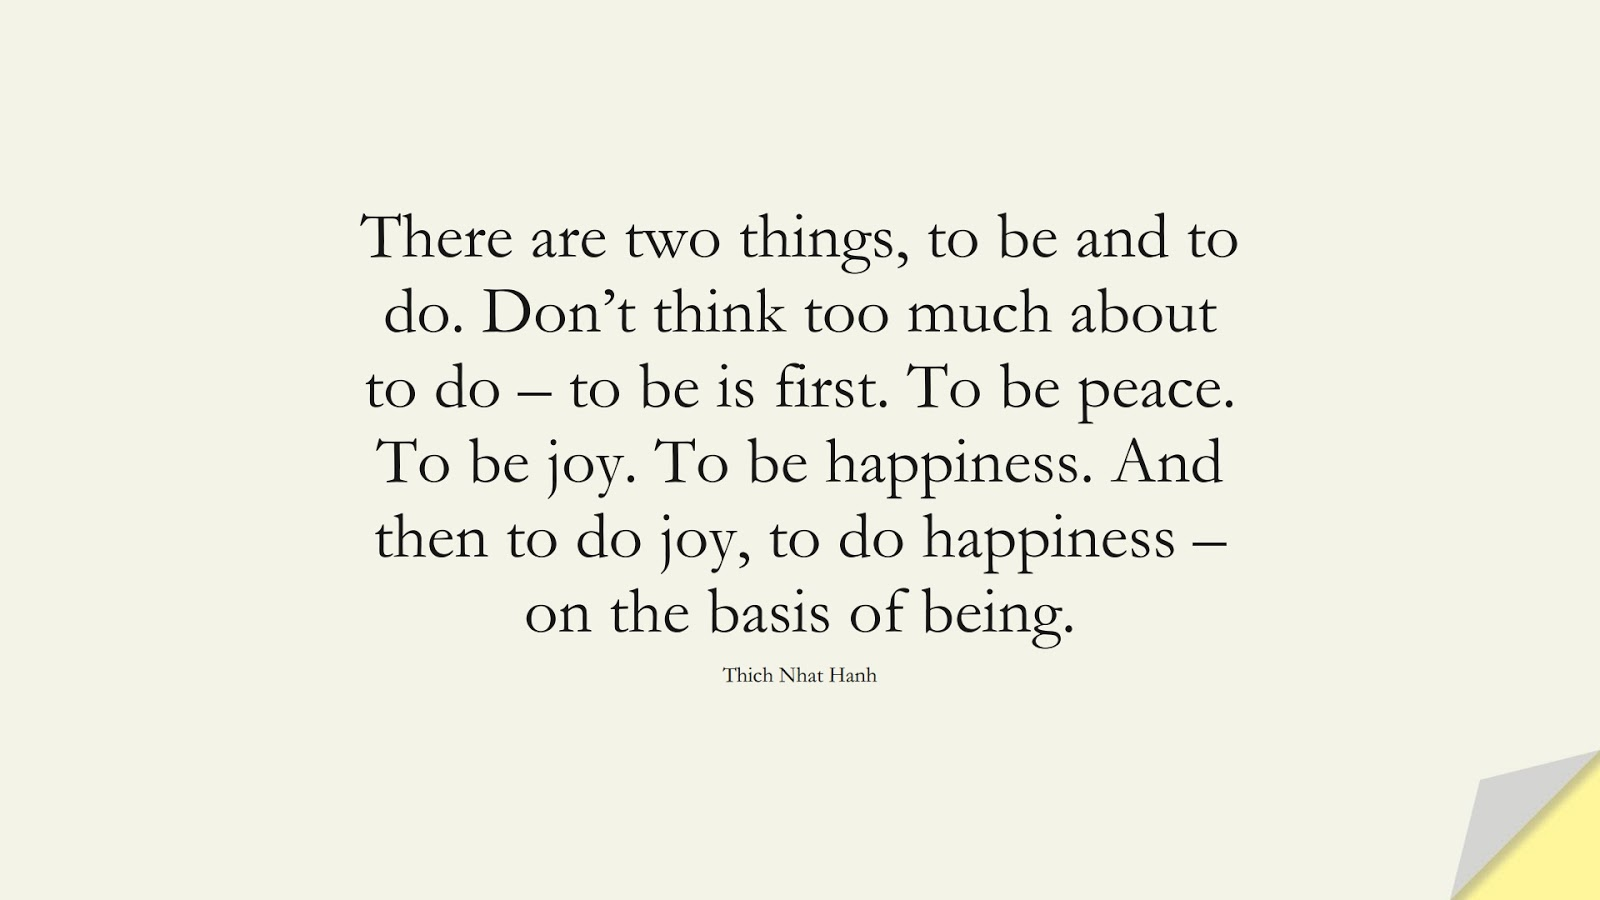 There are two things, to be and to do. Don't think too much about to do – to be is first. To be peace. To be joy. To be happiness. And then to do joy, to do happiness – on the basis of being. (Thich Nhat Hanh);  #CalmQuotes